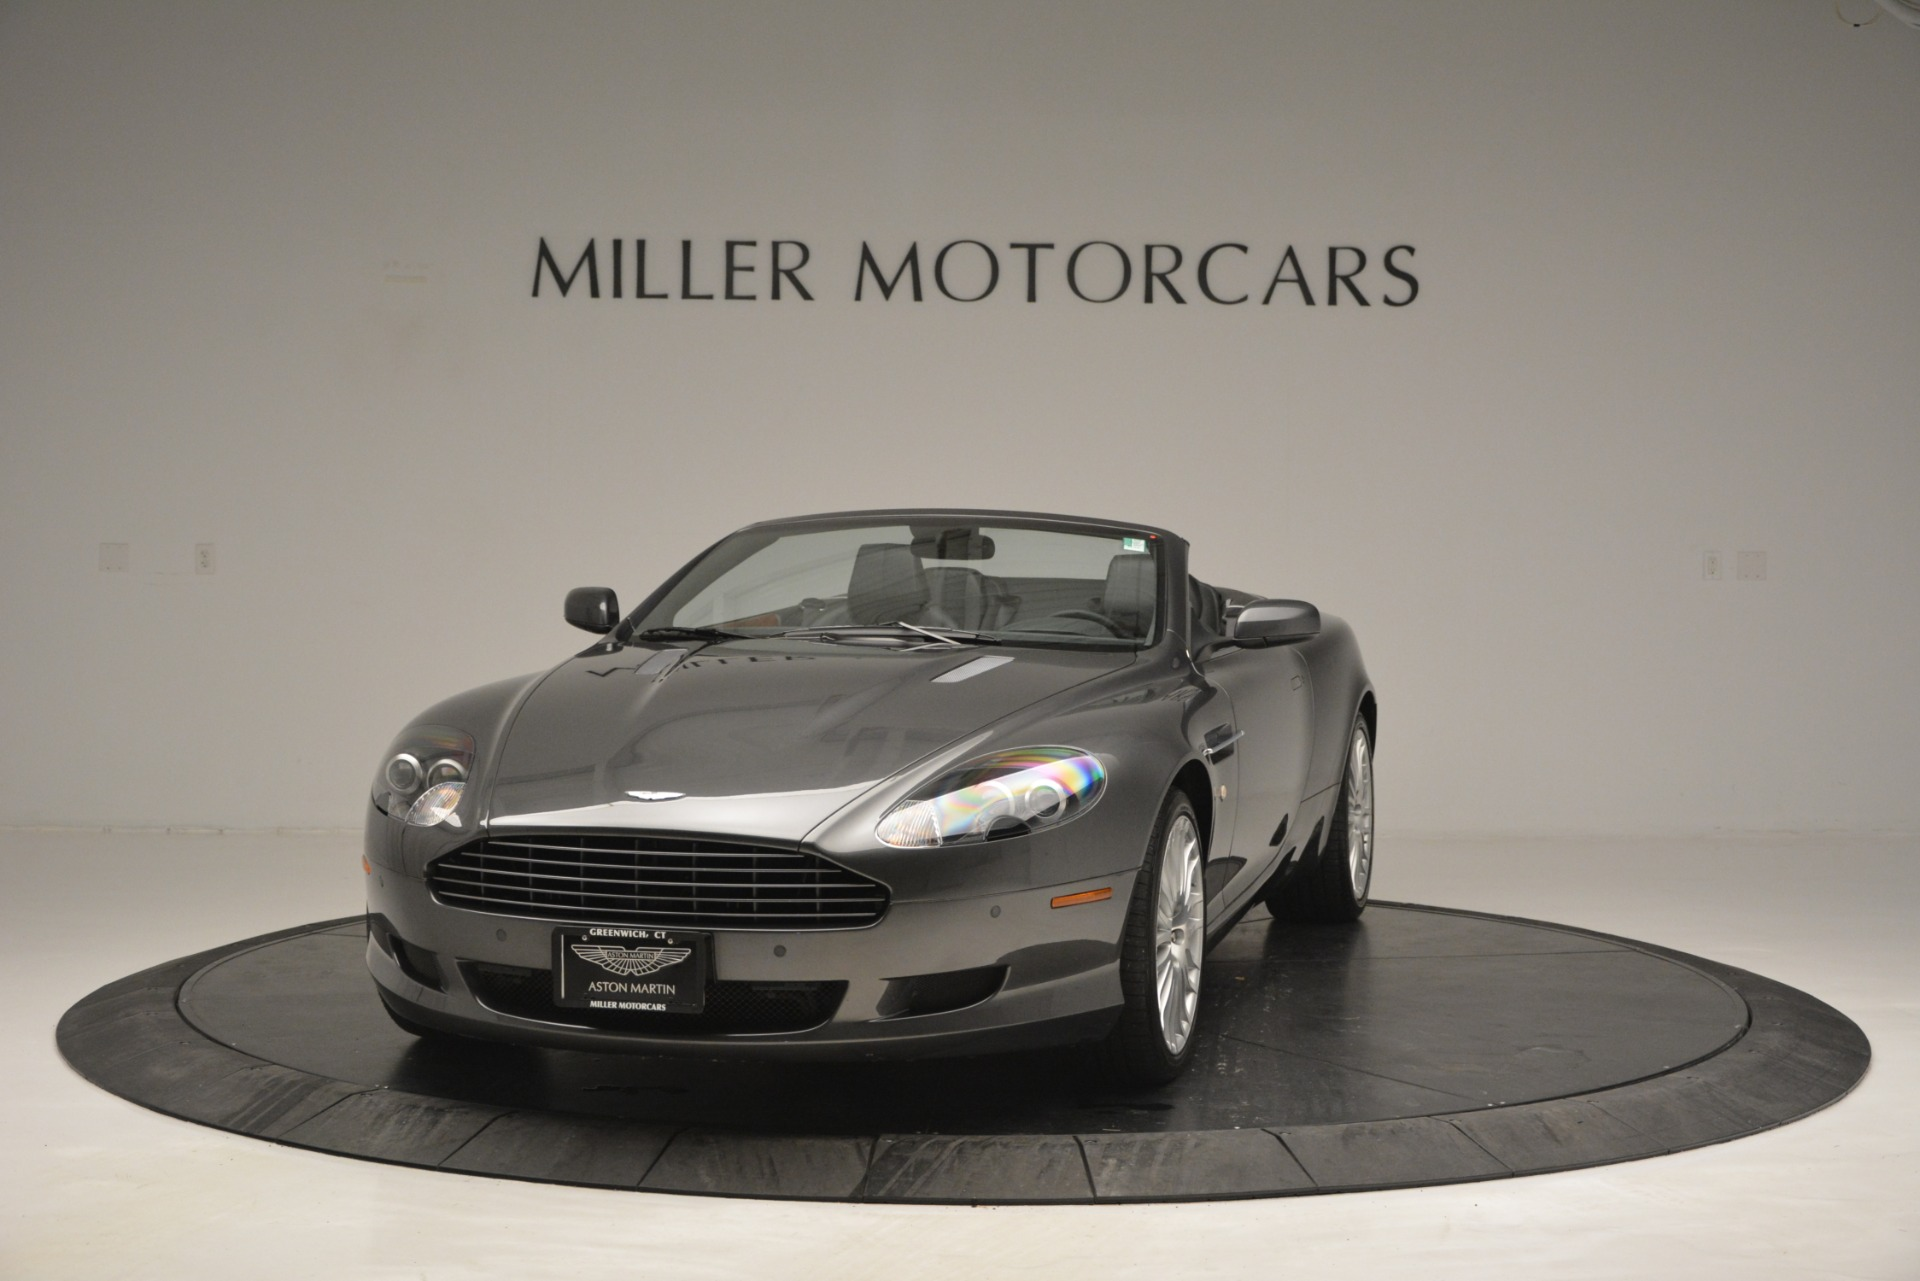 Used 2009 Aston Martin DB9 Convertible For Sale In Westport, CT 2930_p2